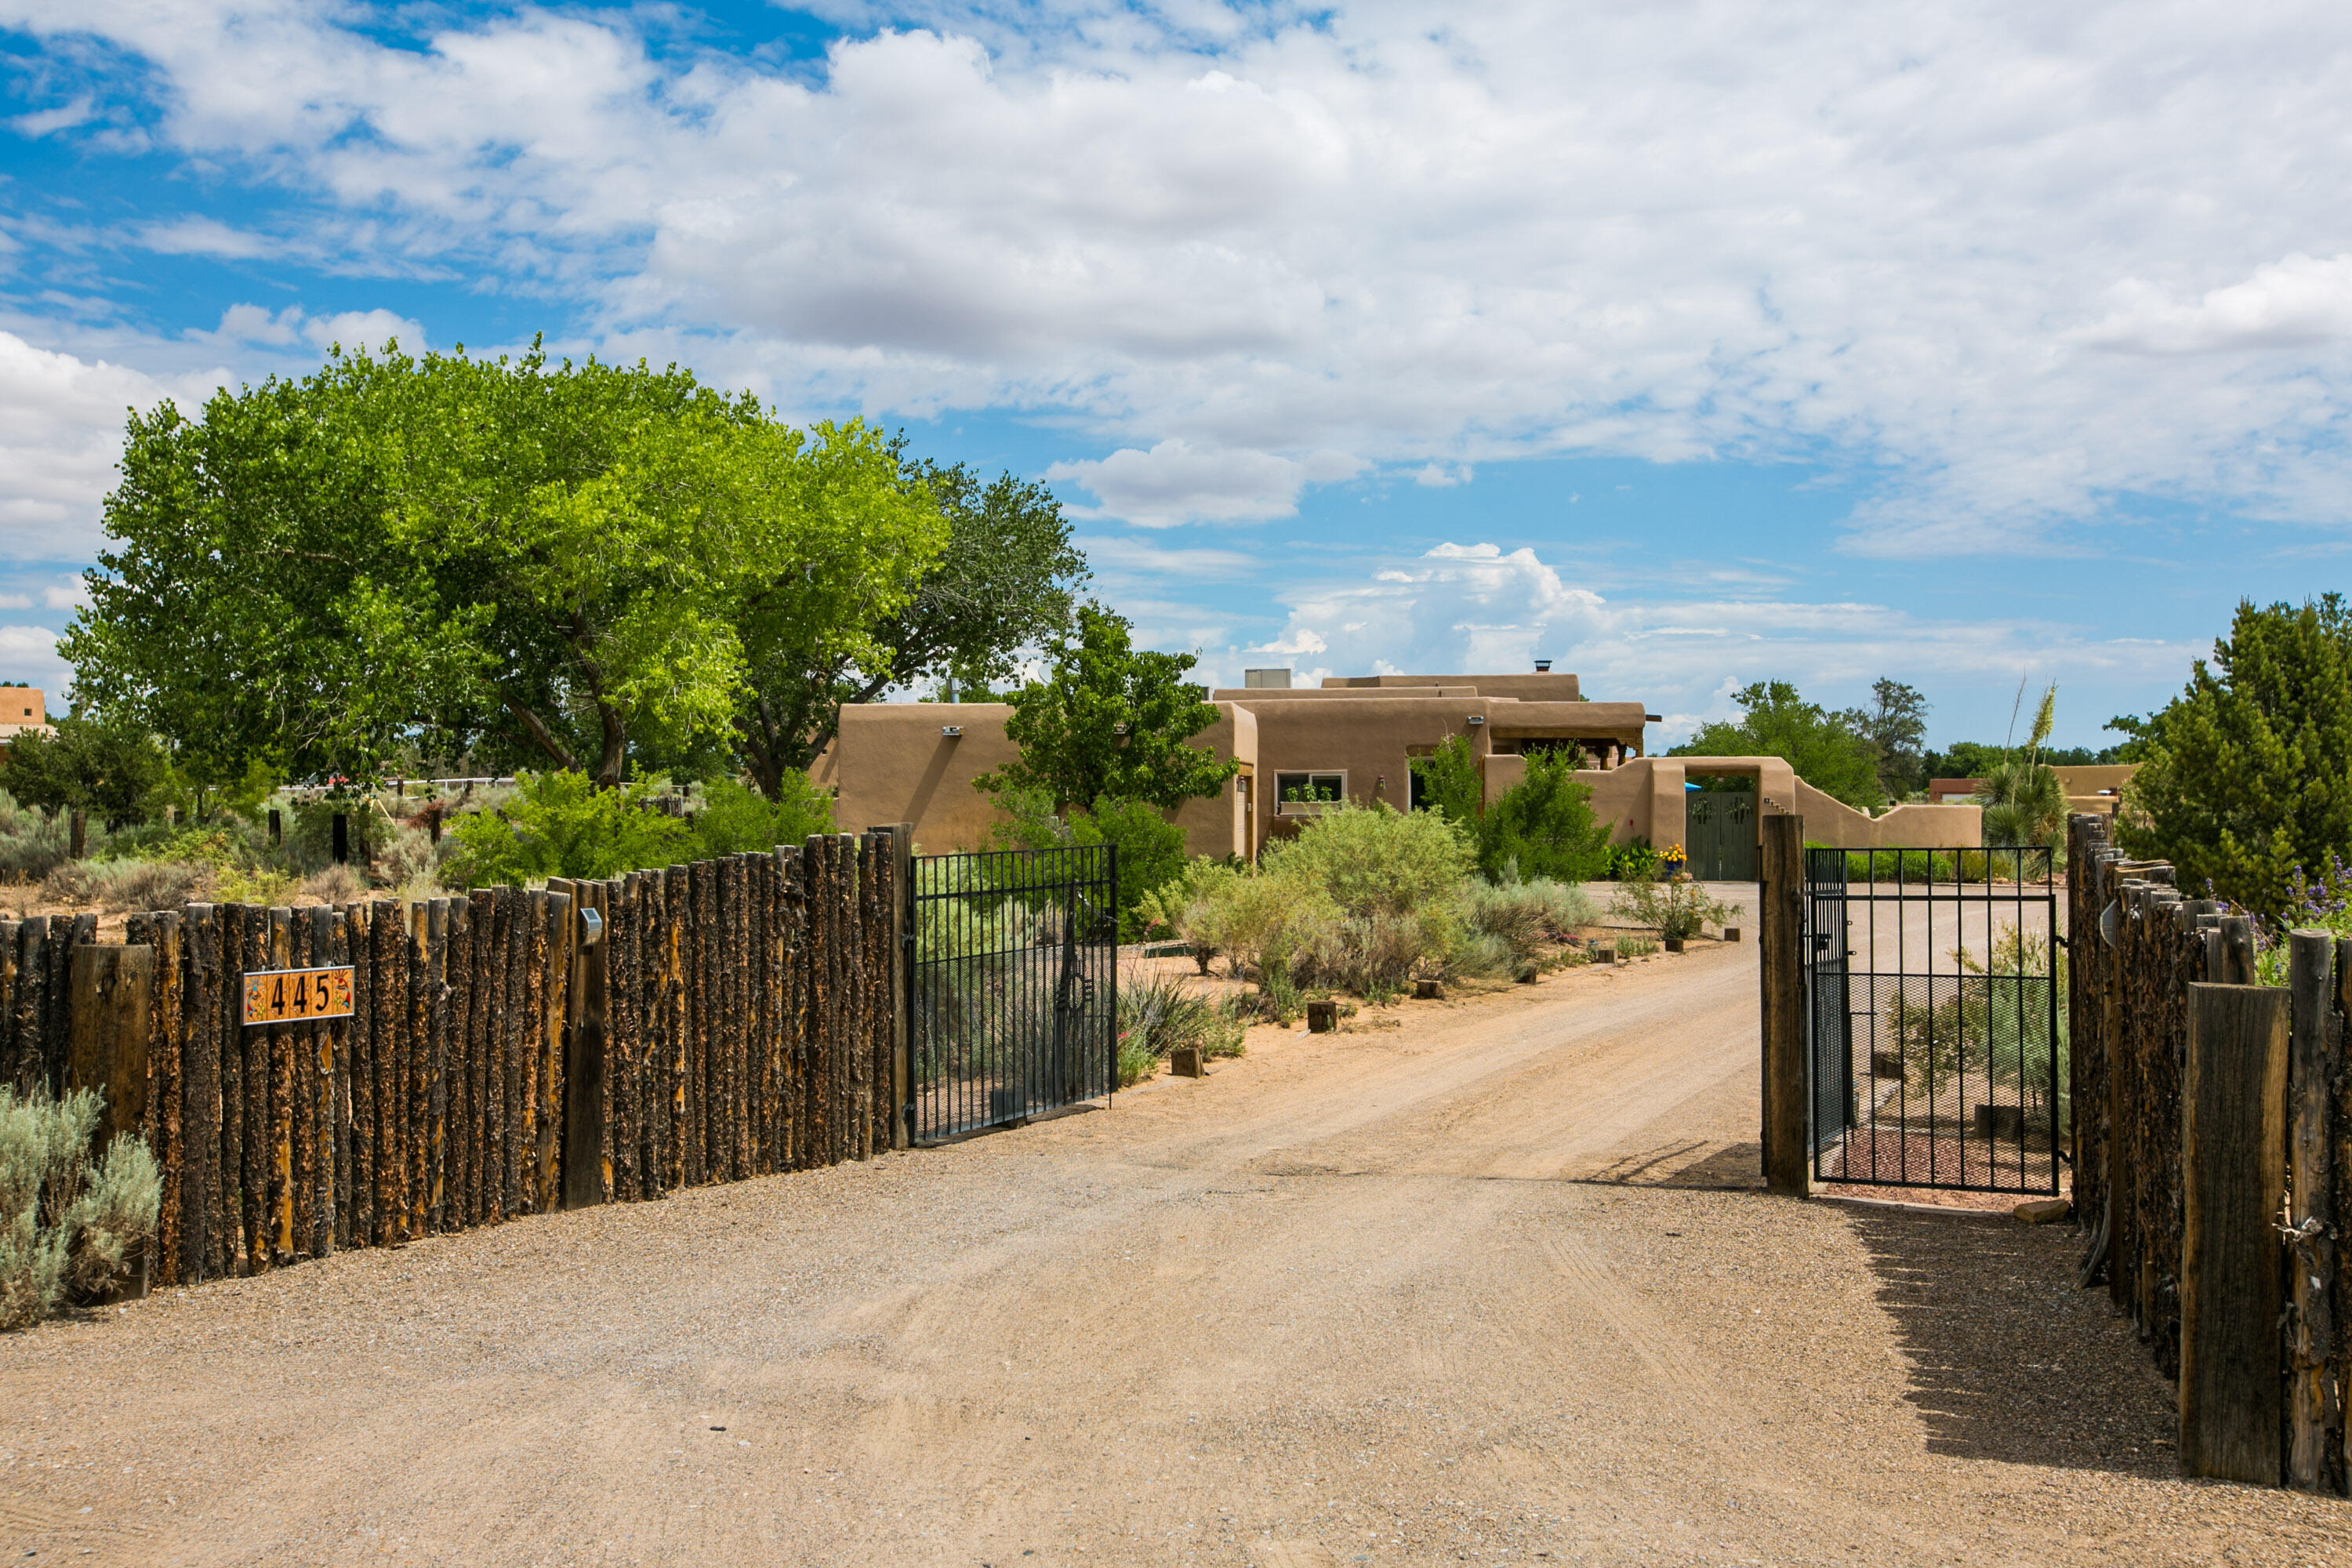 Take a look at this great Corrales property! The entire lot is fully fenced and gated for privacy. Upon entering, you will be greeted by a lovely lush courtyard with beautiful plantings, a covered portal, and spectacular views of the Sandia Mountains. The home was designed to take advantage of the views from the living area, the kitchen and breakfast nook, and the huge home office! Charming Southwestern design features include exposed adobe, a Kiva fireplace, wood beamed ceilings with Vigas, Saltillo tile, Talavera tile imported from Mexico, and handcrafted doors throughout. Built in bookcases in the great room, and a built in desk in the home office offer tons of storage. The Village of Corrales offers a rare opportunity for country living minutes from the city amenities!